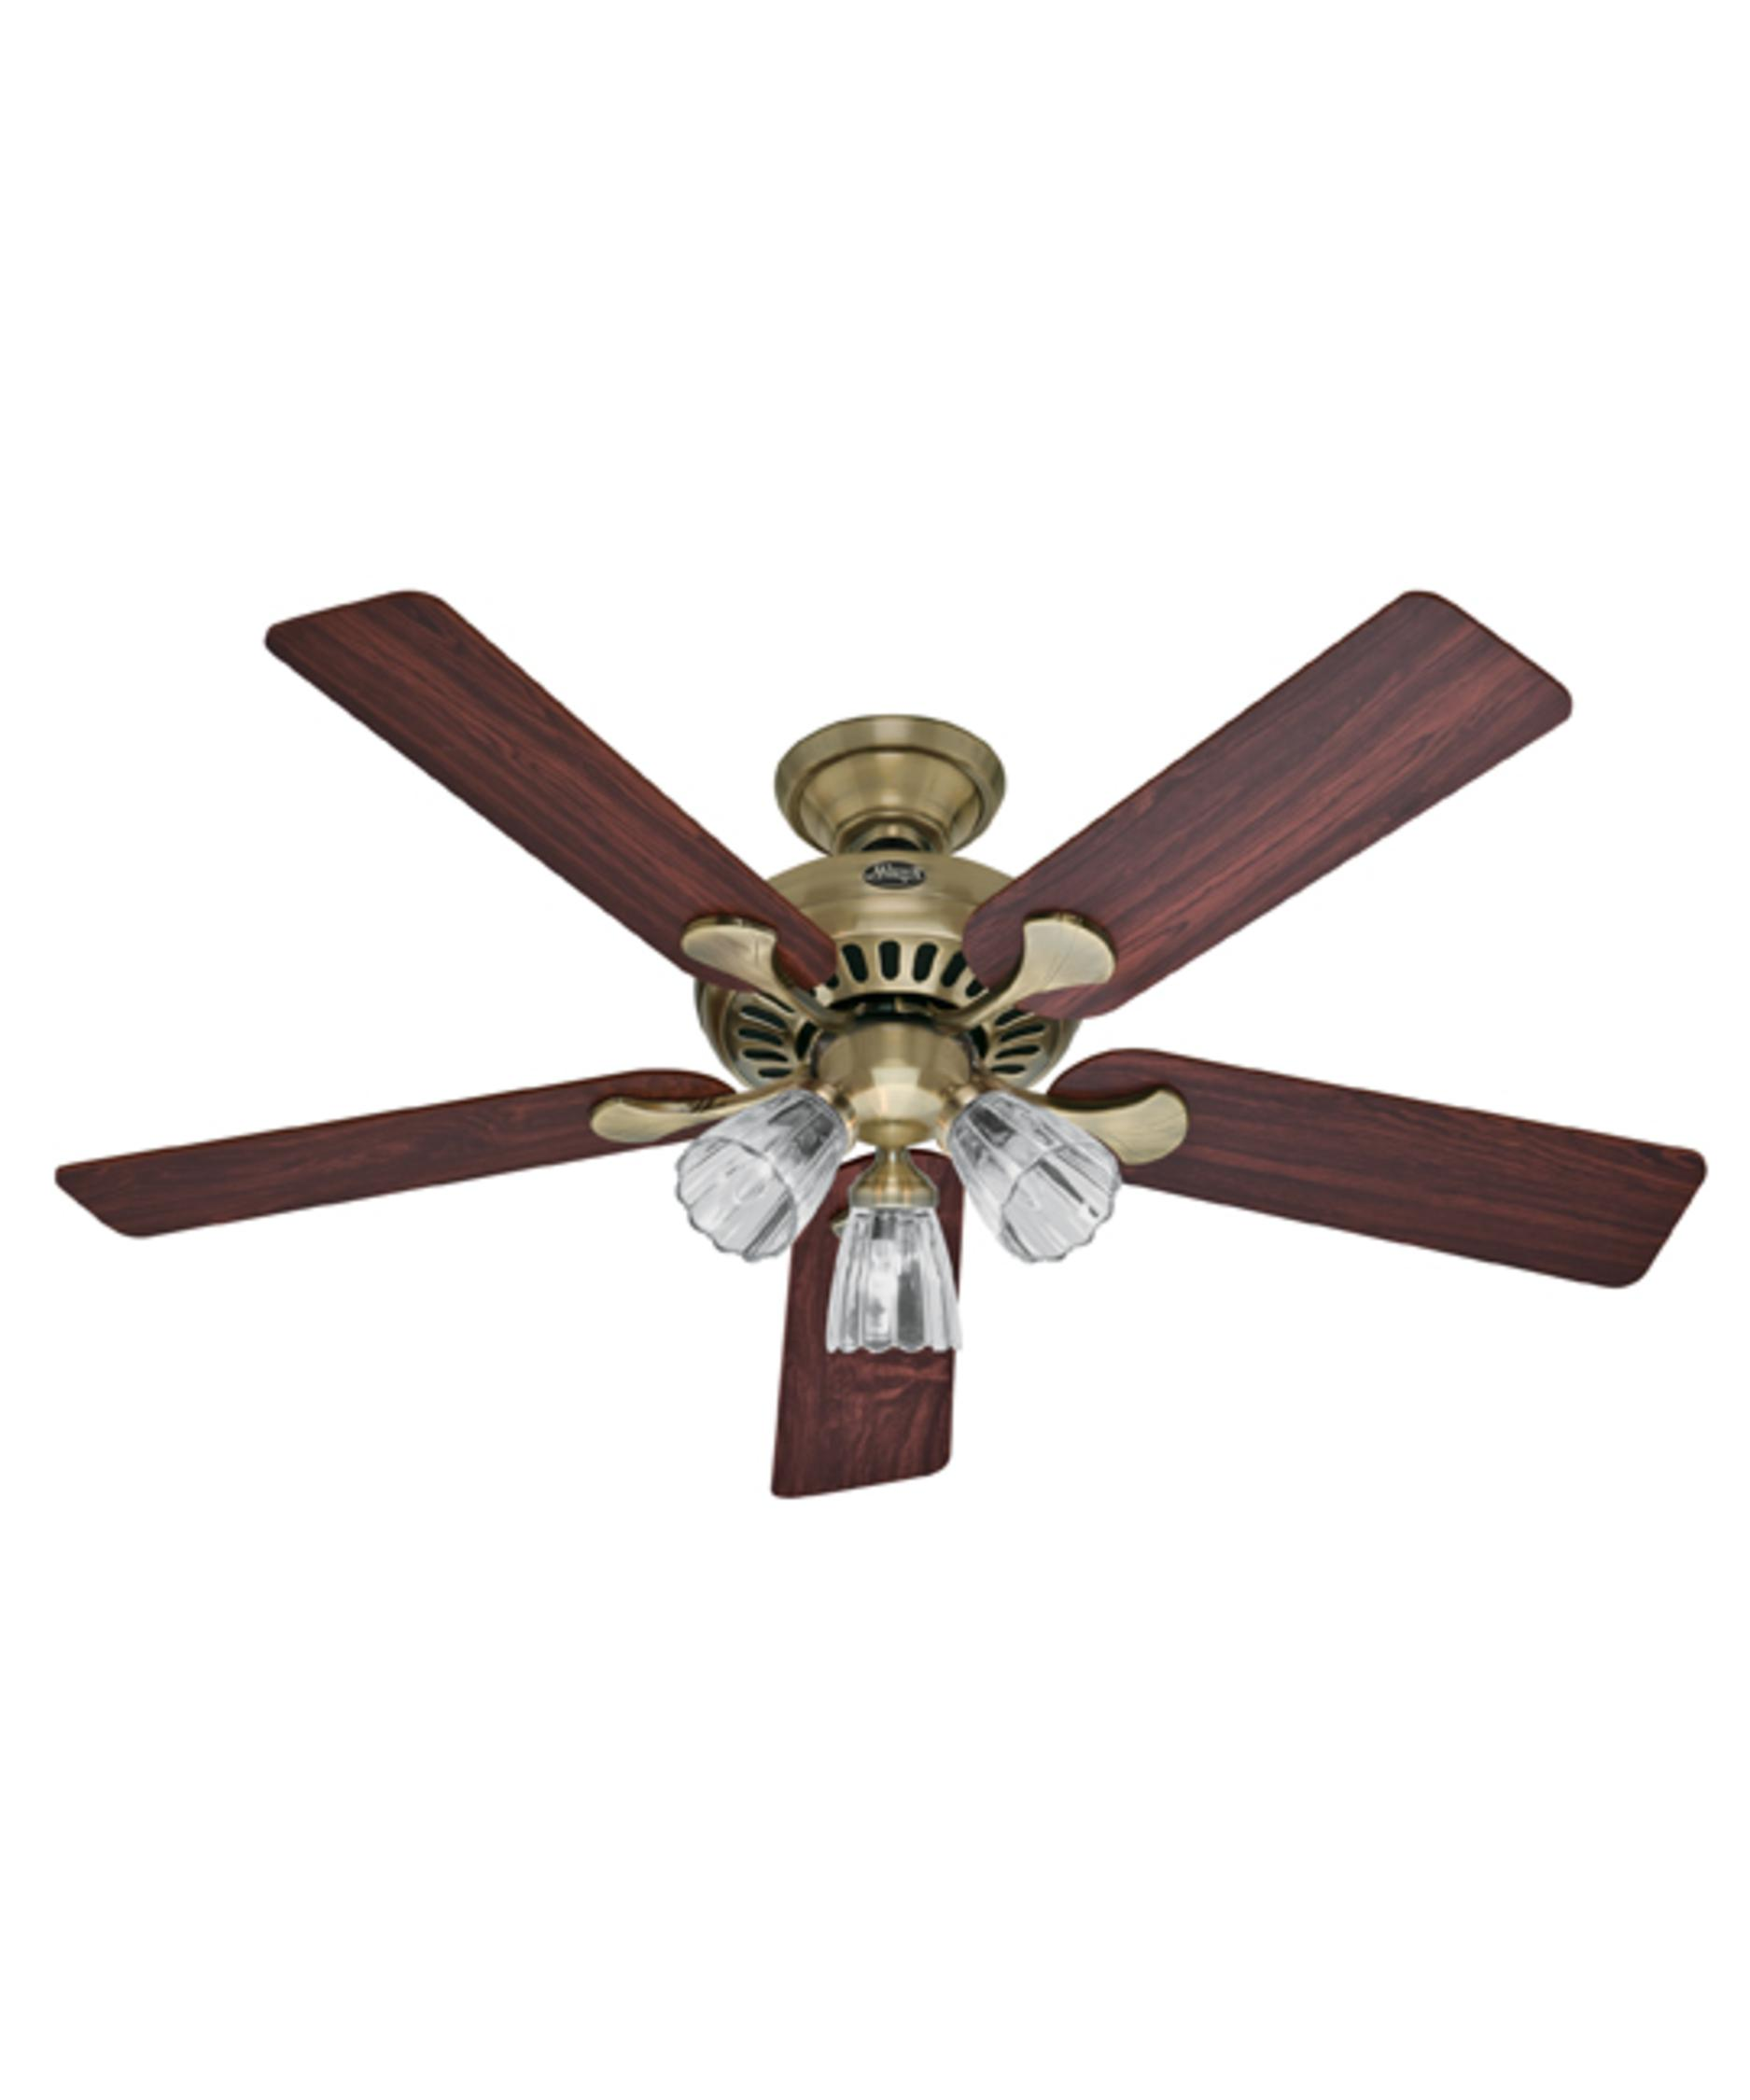 Murray Feiss Ceiling Fan Light Kit: Hunter Fan 20540 Summer Breeze Plus 52 Inch Ceiling Fan